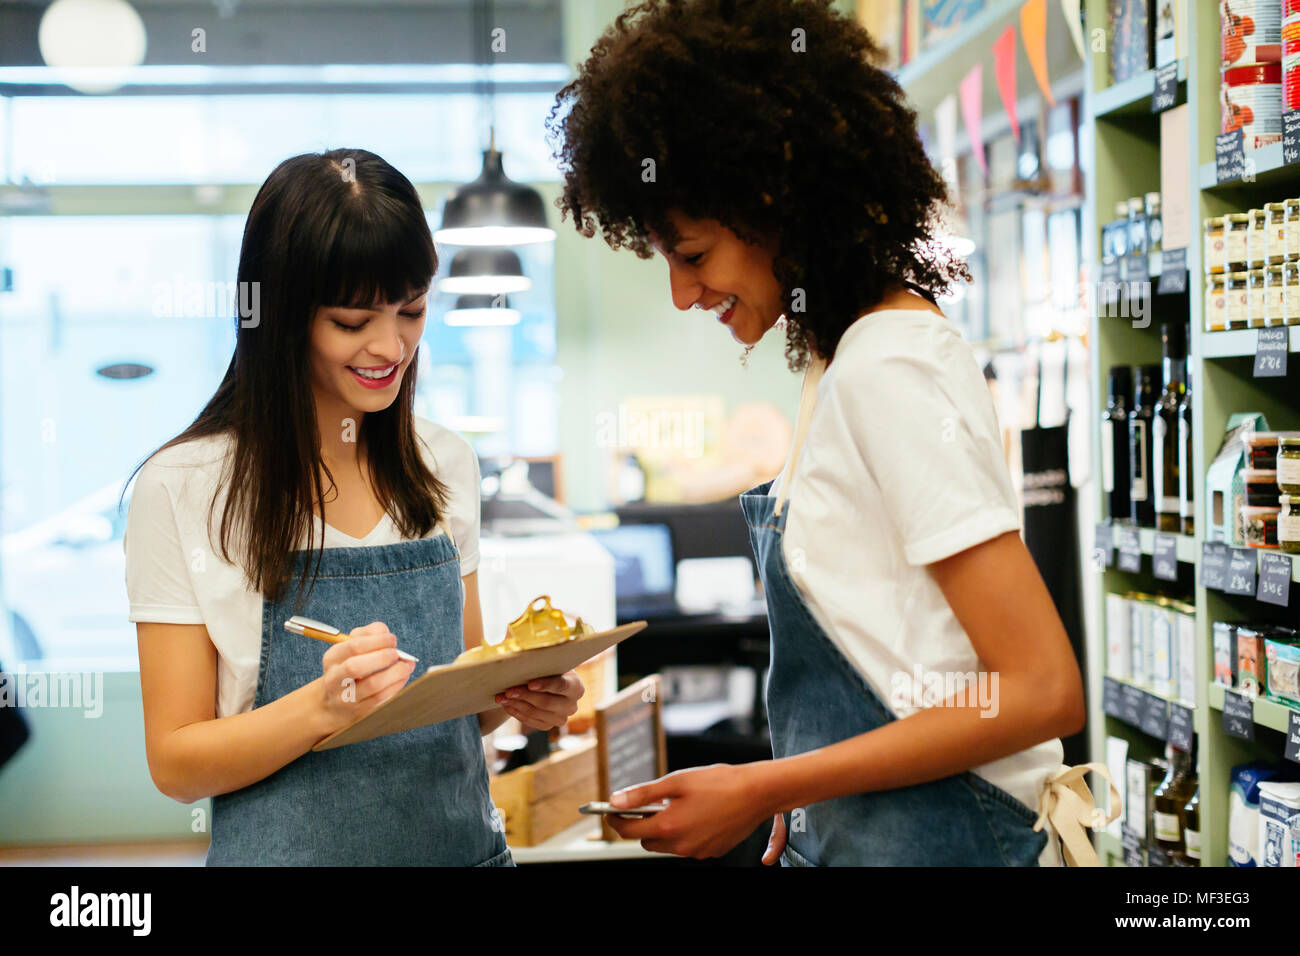 Two smiling women in a store with clipboard - Stock Image